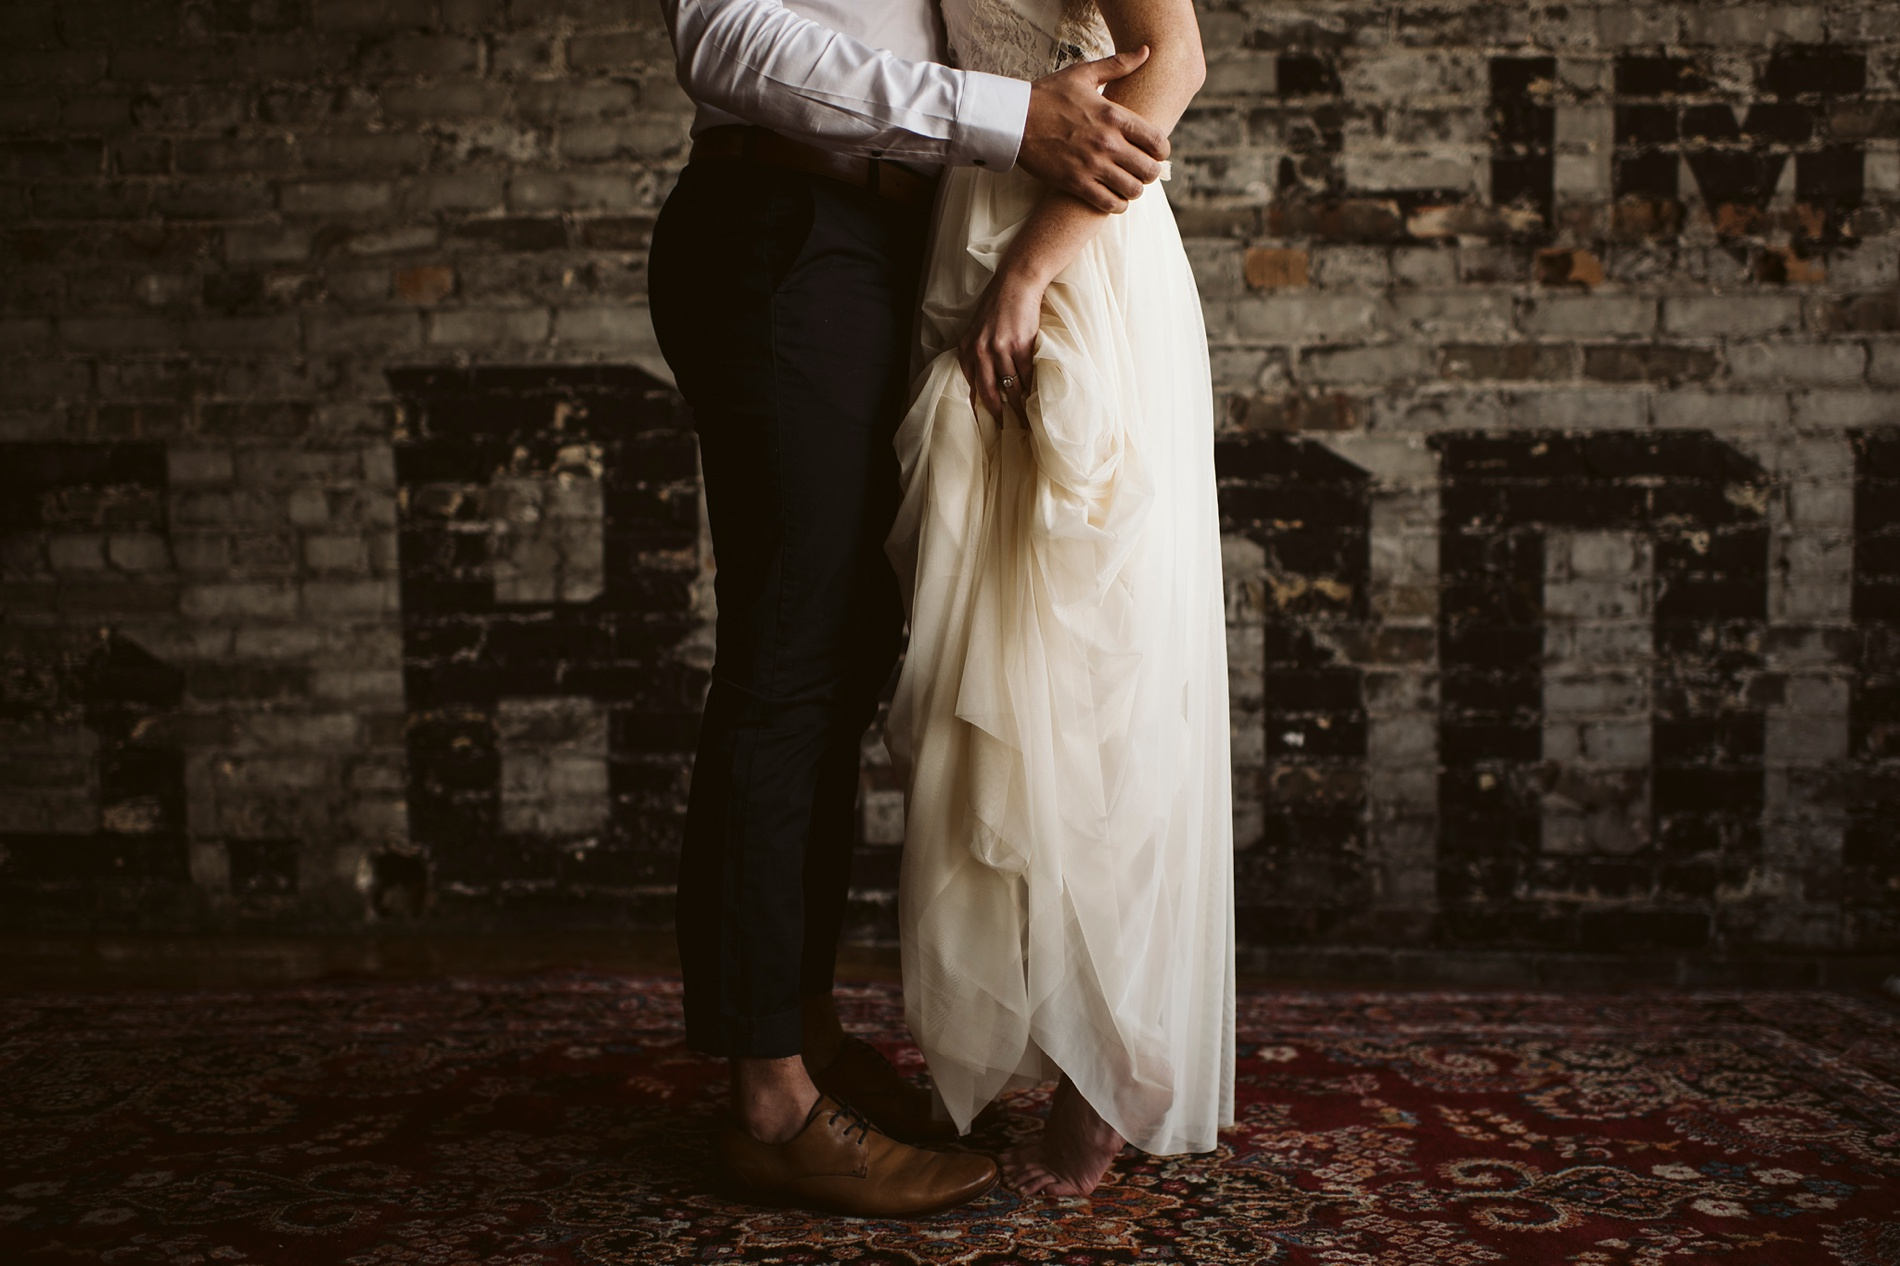 The_Burroughes_Wedding_Best_Photographers_Toronto_0009.jpg